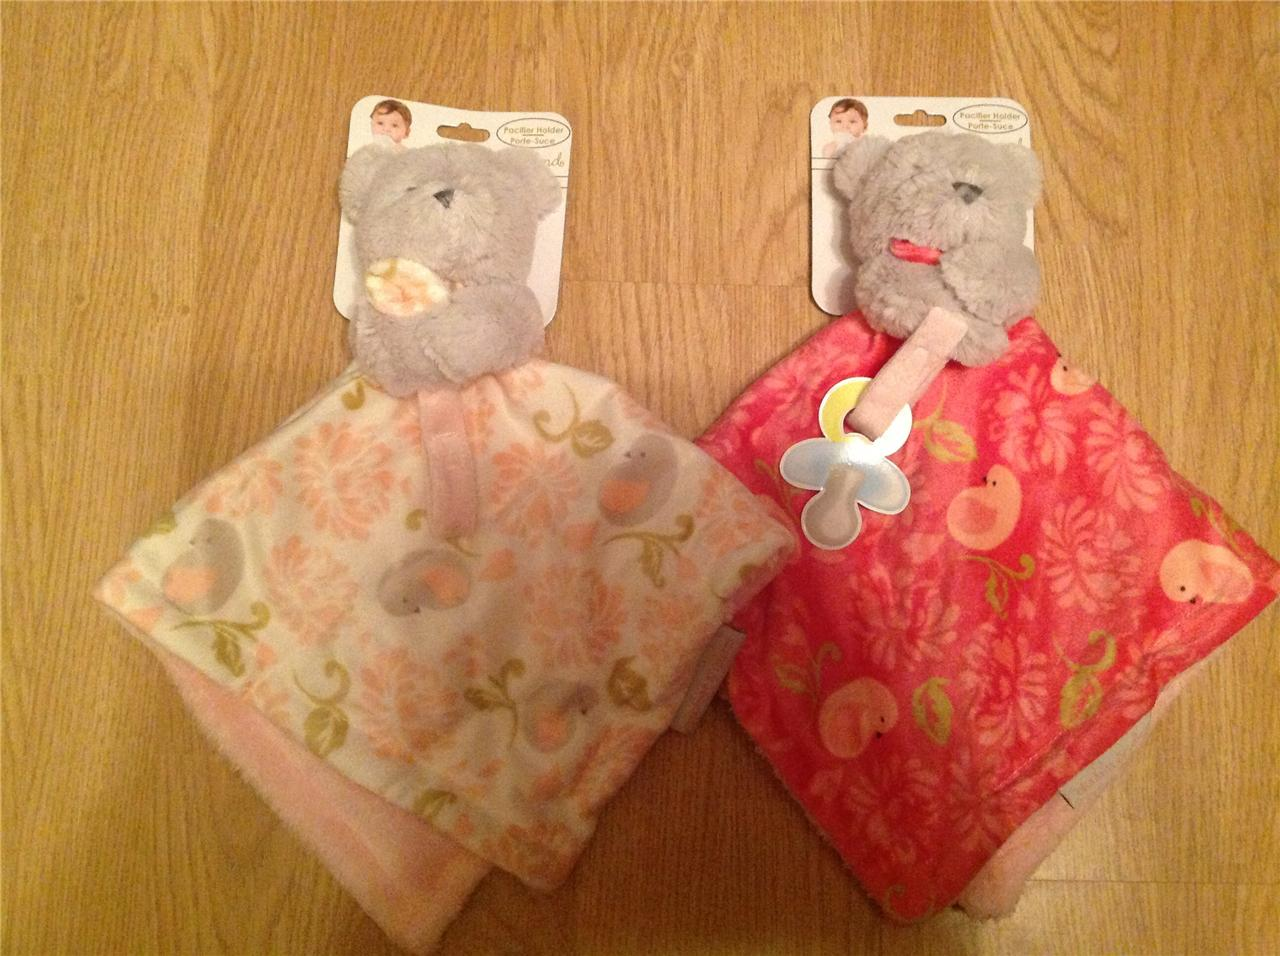 NEW-BLANKETS-BEYOND-Velour-TEDDY-BEAR-Comforter-Security-Comfort-Nunu-Blankie